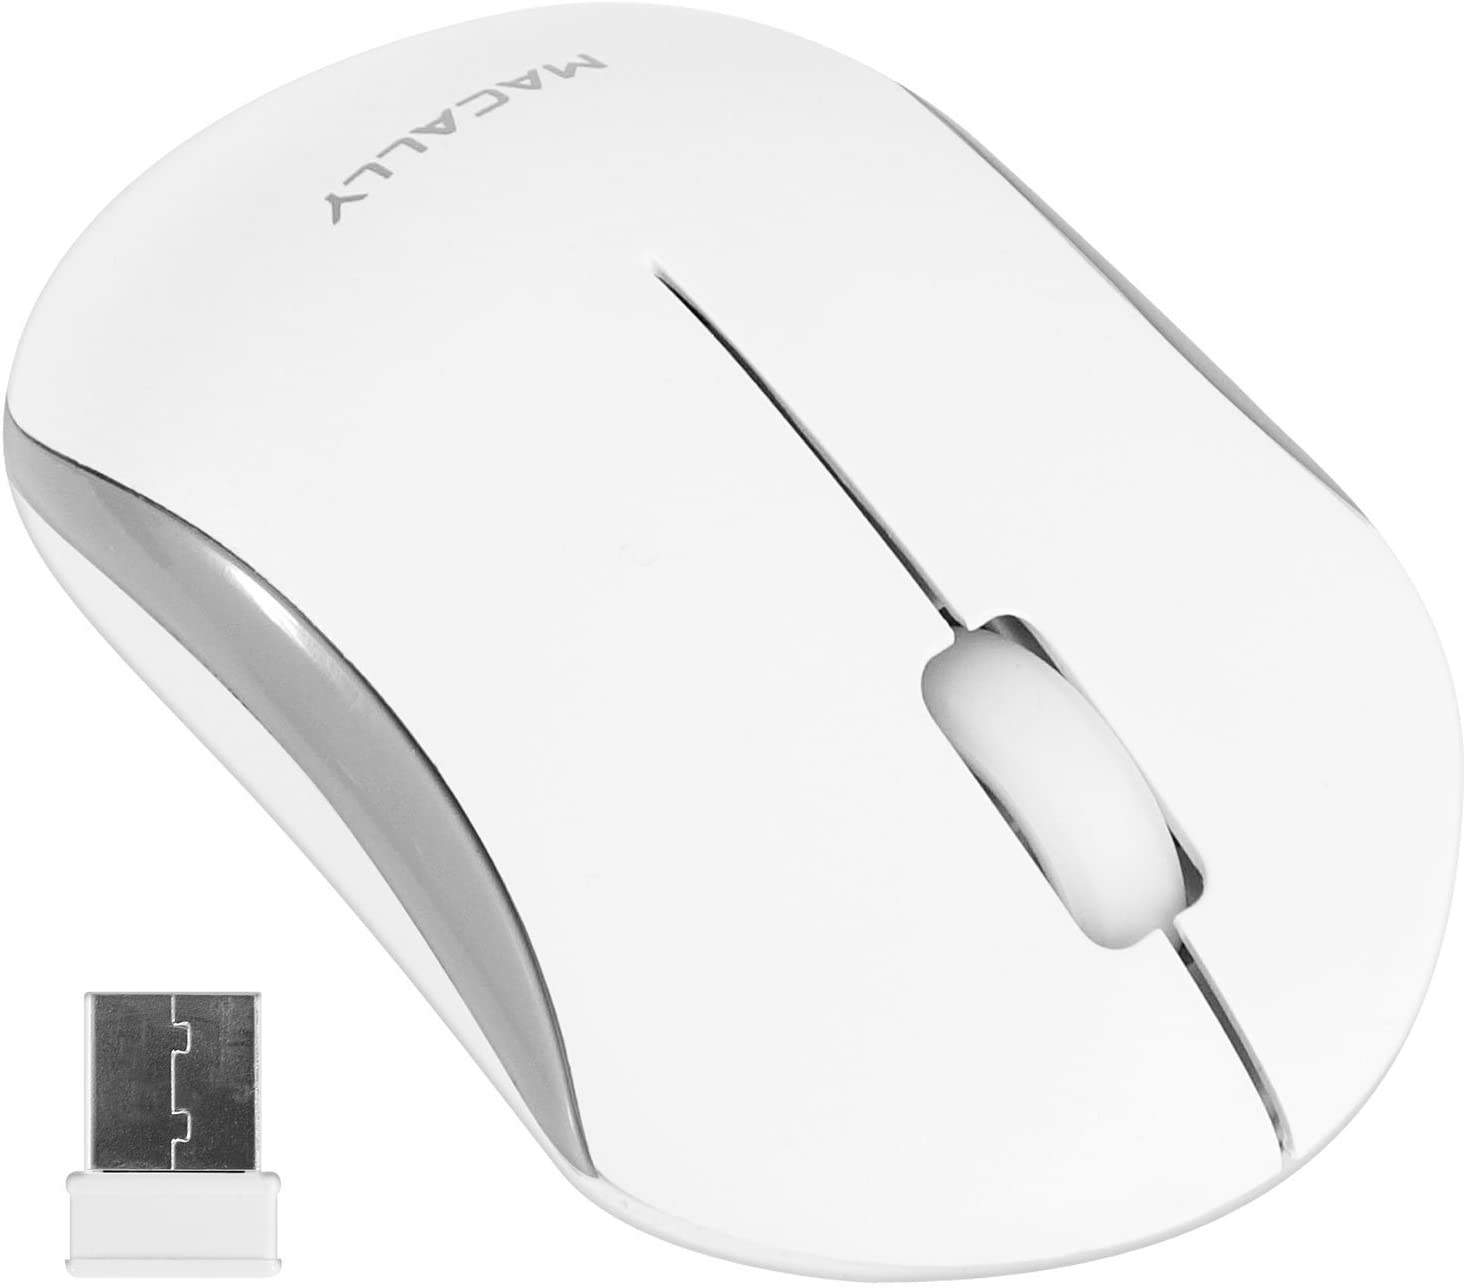 Macally RF Wireless Computer Mouse with 3 Button, Scroll Wheel, 2.4ghz Dongle Receiver, Compatible with Windows PC, Apple MacBook Pro/Air, iMac, Mac Mini, Laptops (White)